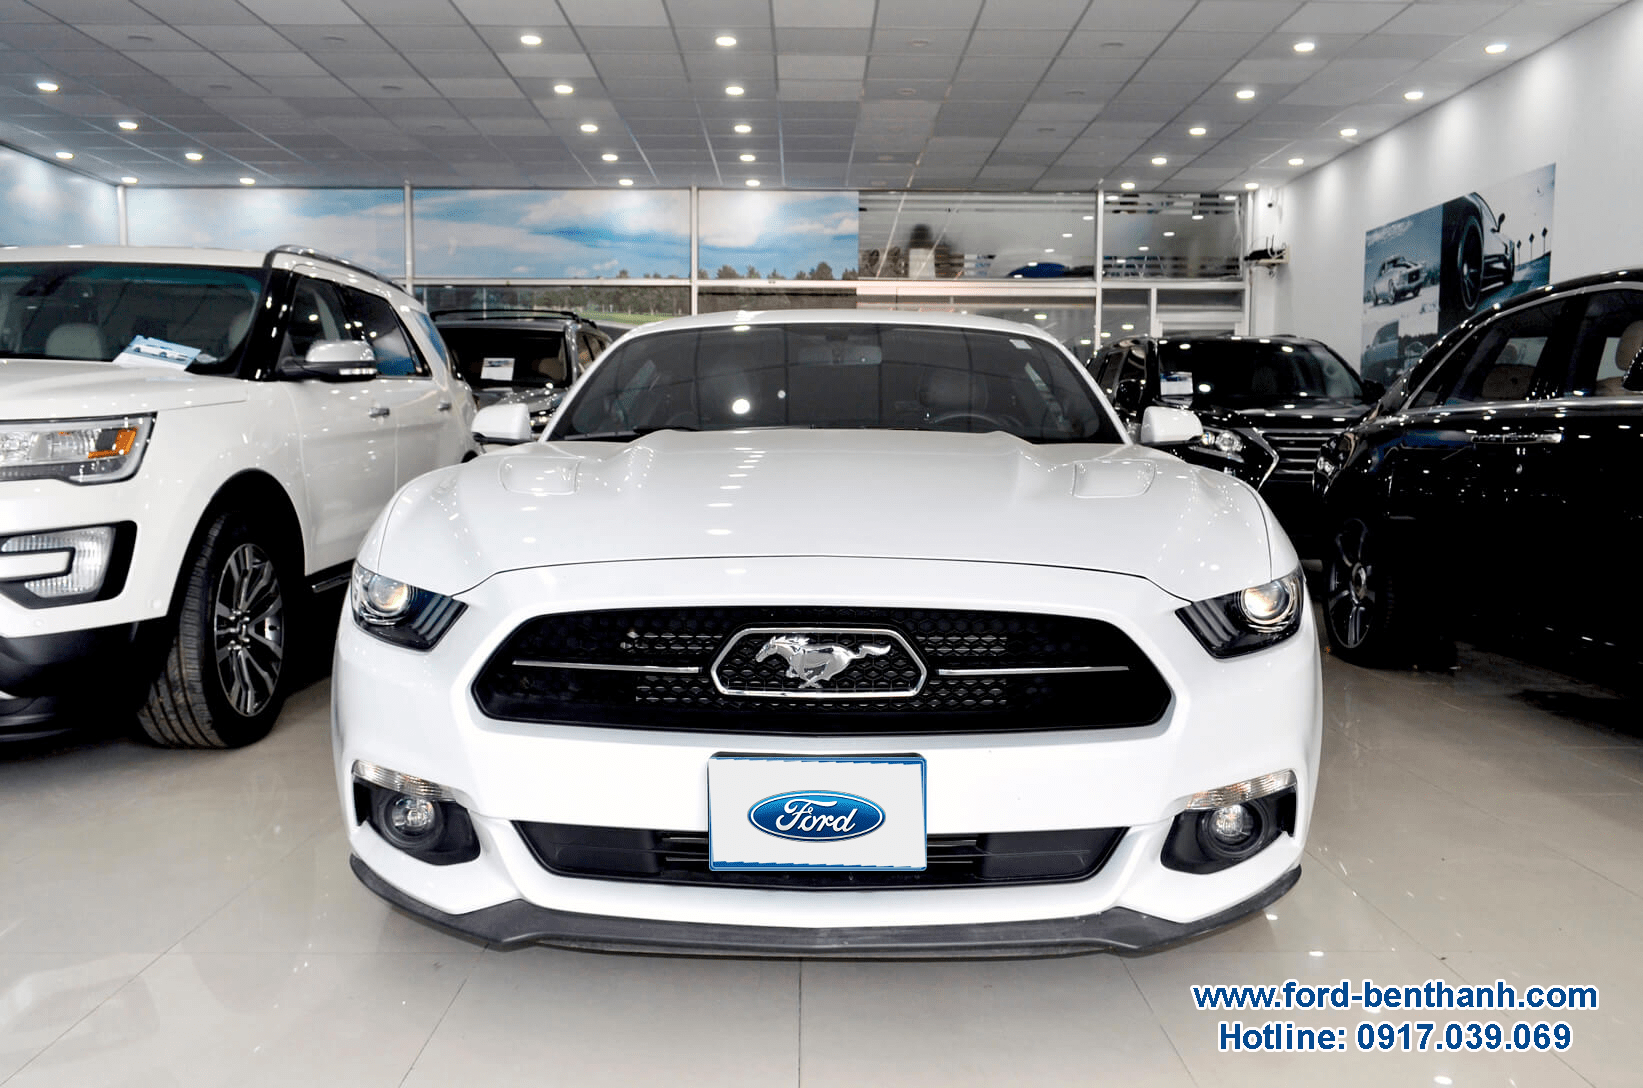 ford-mustang-ford-benthanh-0917039069-1